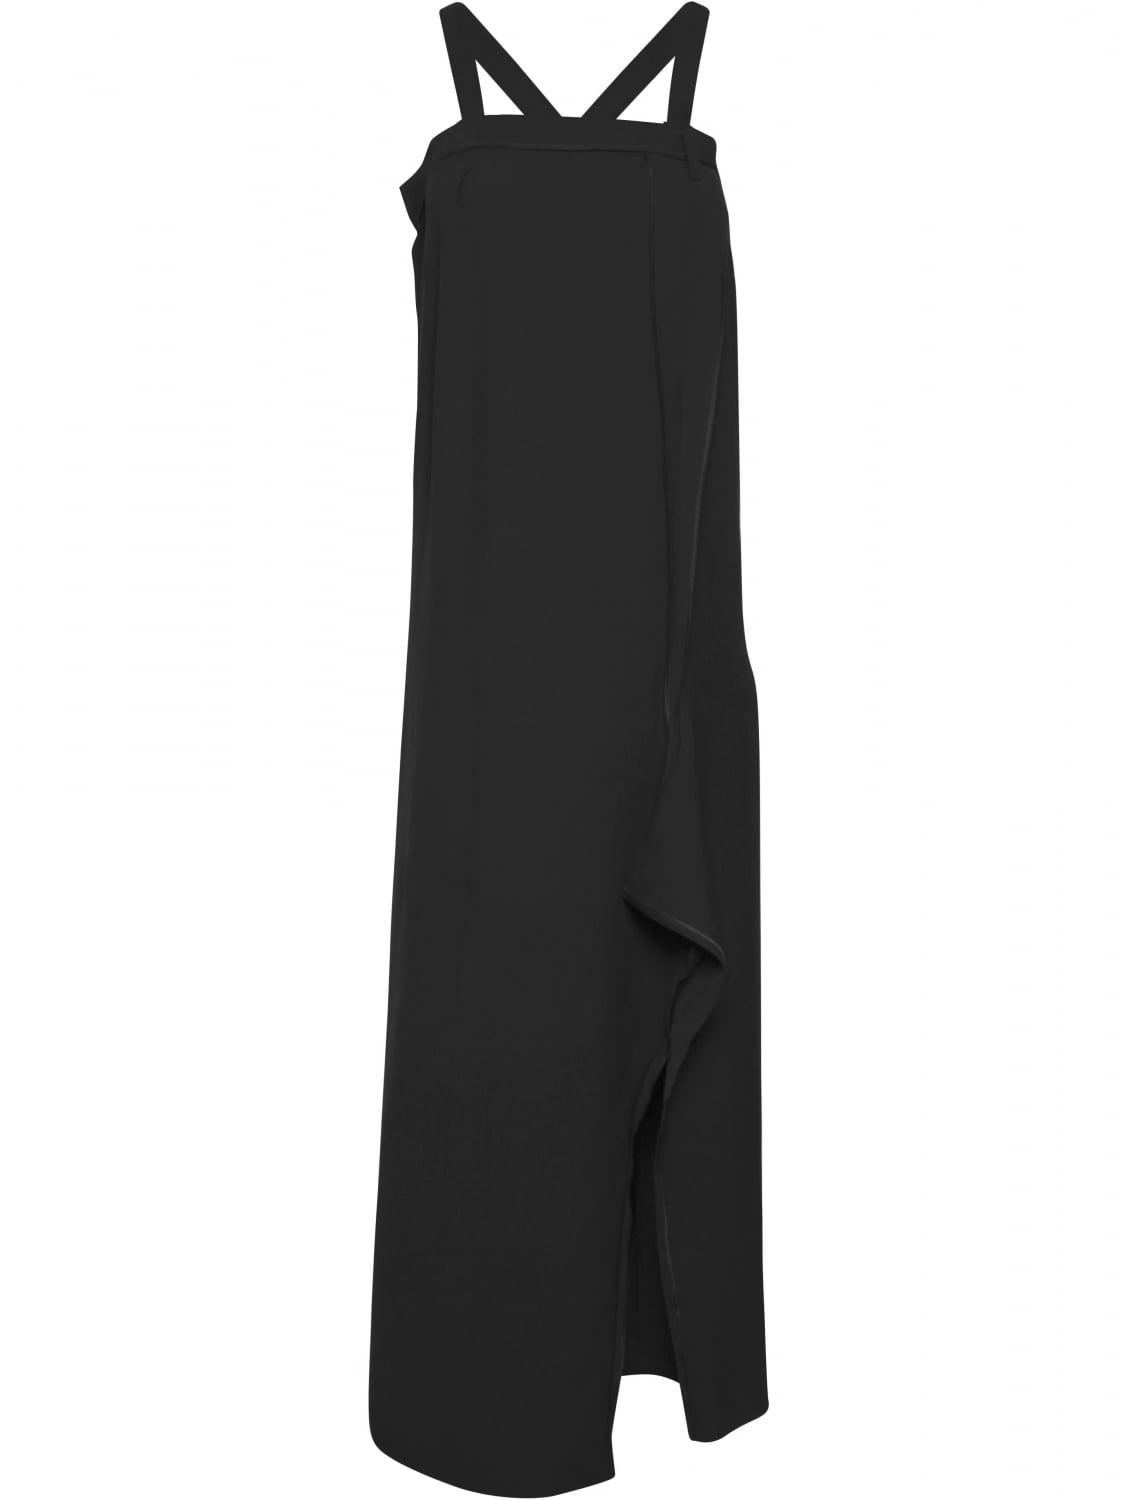 tailored dress - Black Maison Martin Margiela 0QgvlH